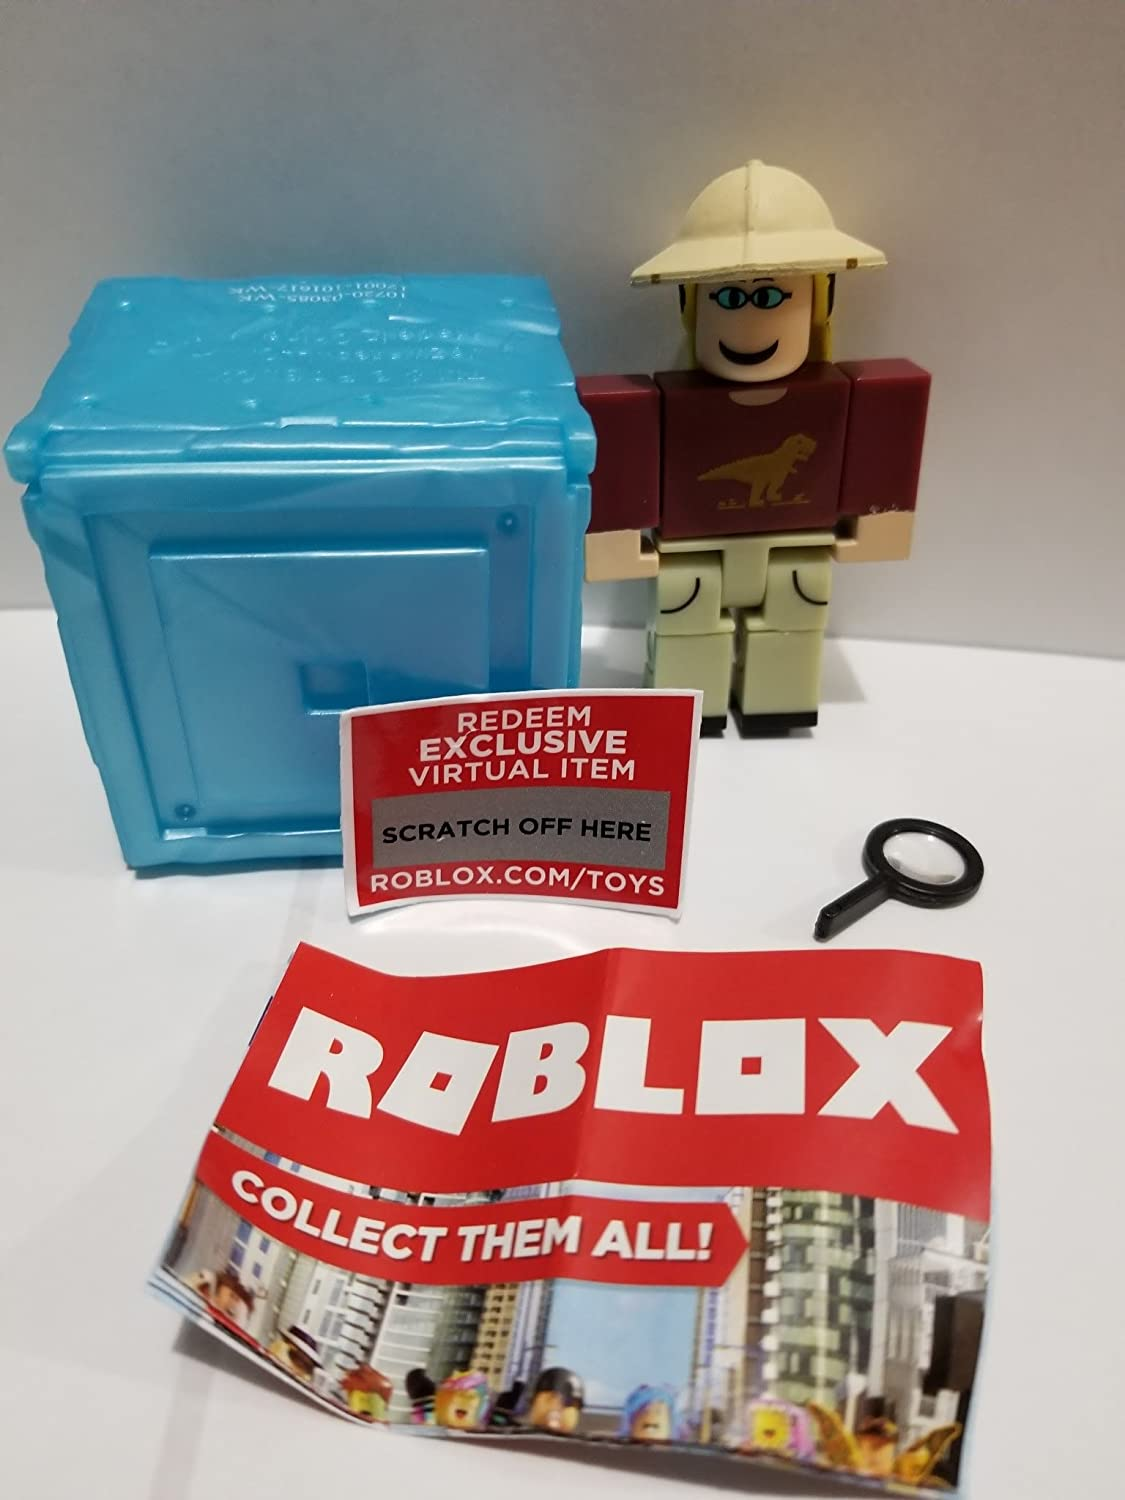 Roblox Toys Code Amazon Com Roblox Series 3 Dinosaur Simulator Paleontologist Action Figure Mystery Box Virtual Item Code 2 5 Toys Games